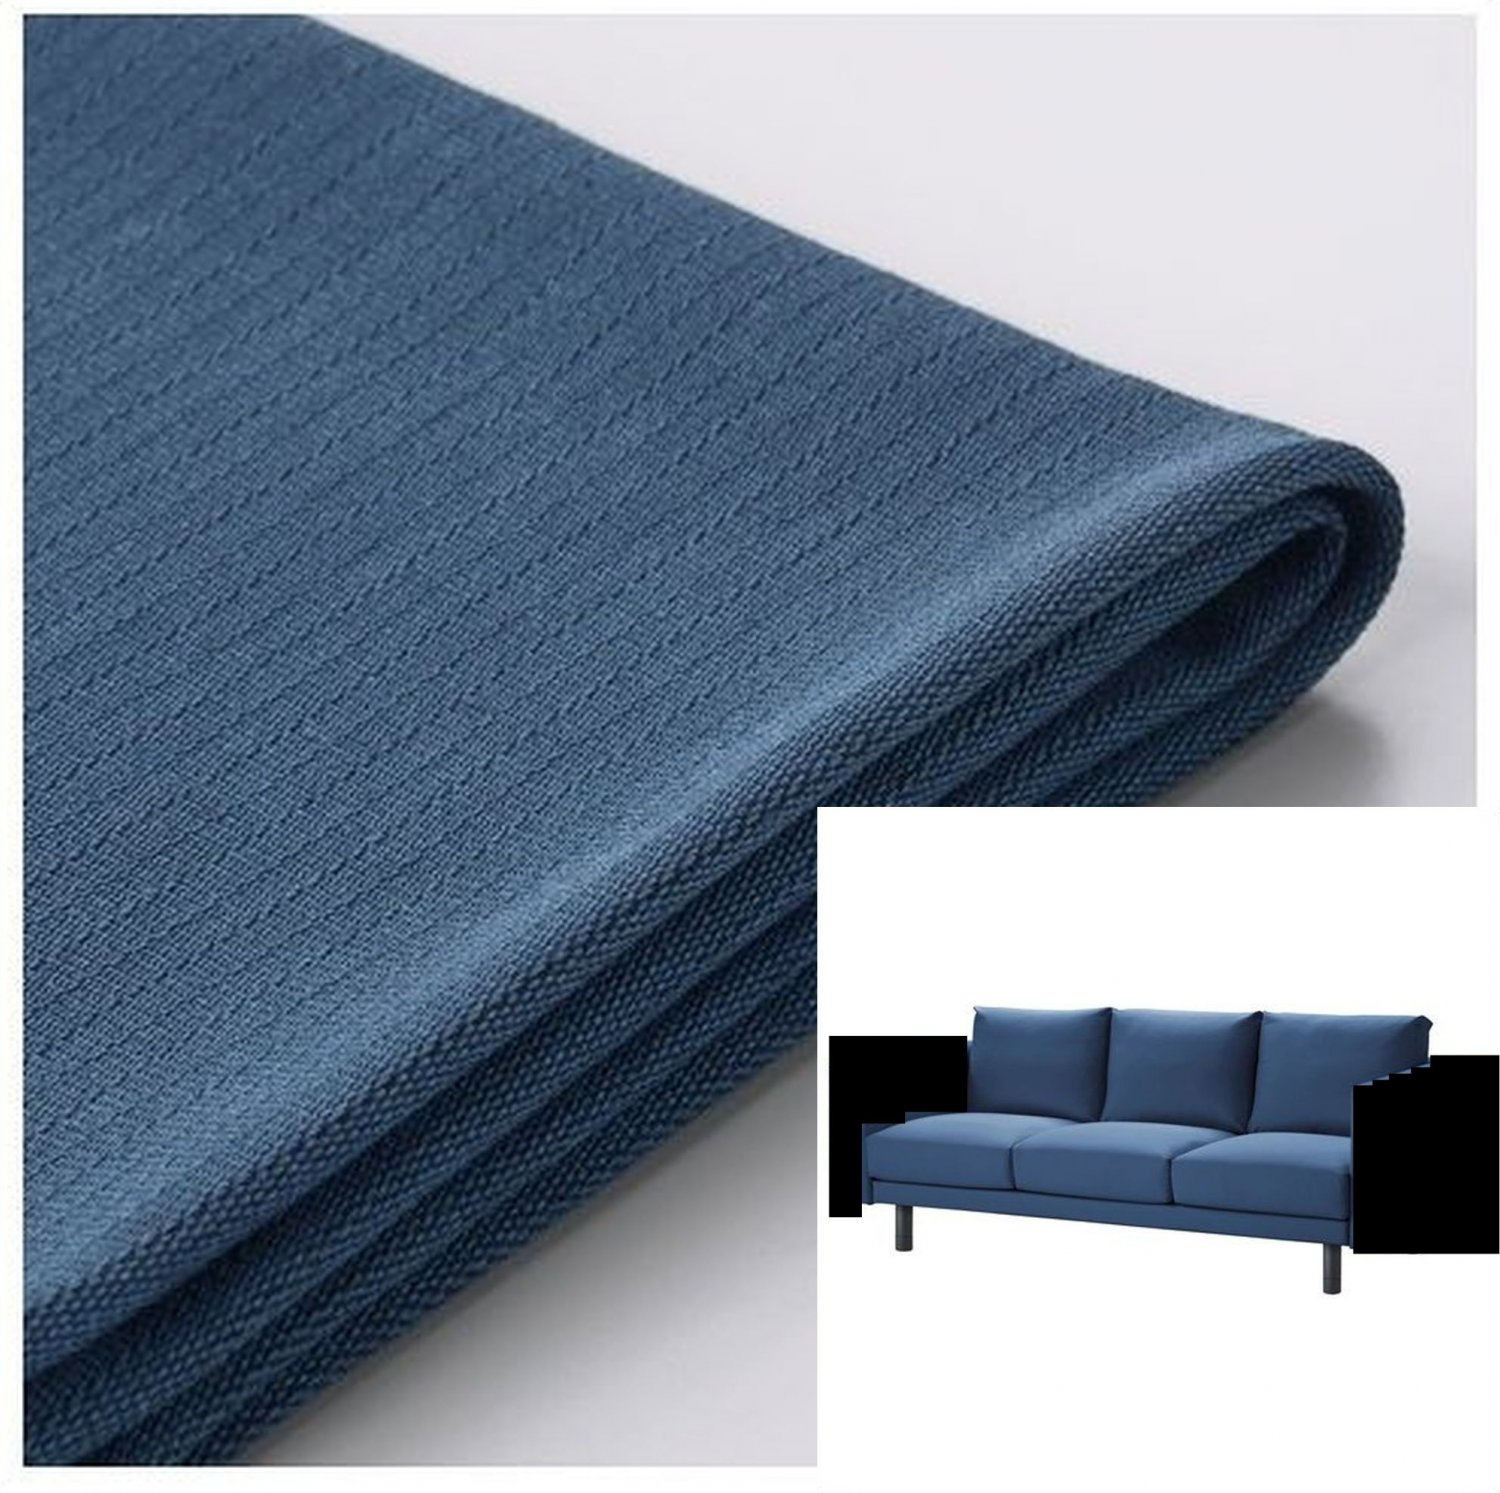 sofa arm wrap uk mid century modern style bed ikea norsborg 3 seat section slipcover cover edum